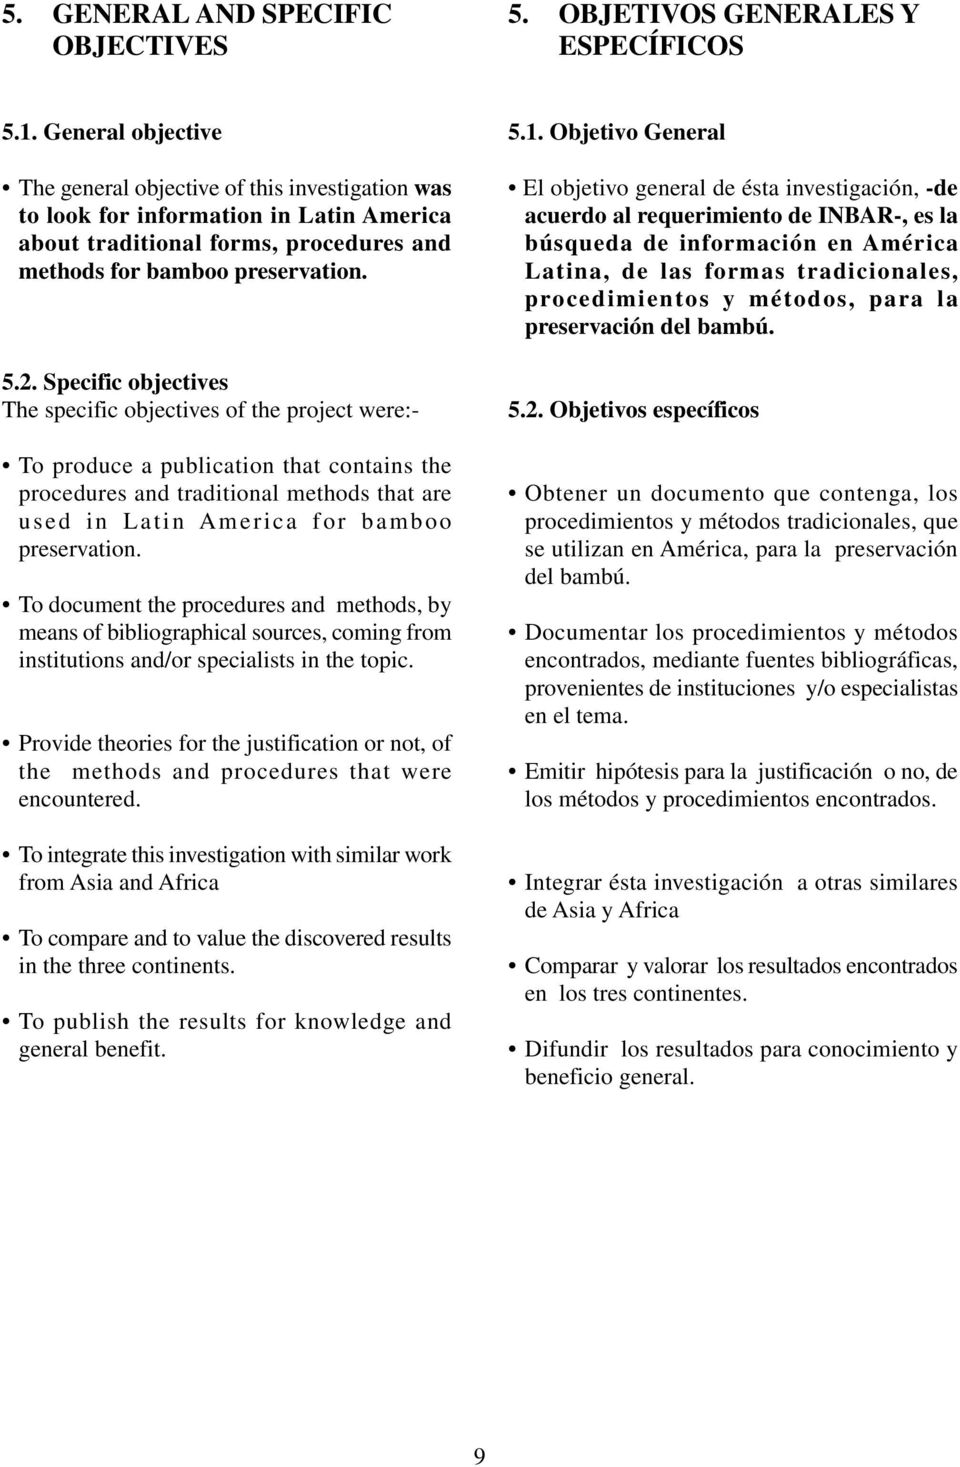 Specific objectives The specific objectives of the project were:- To produce a publication that contains the procedures and traditional methods that are used in Latin America for bamboo preservation.